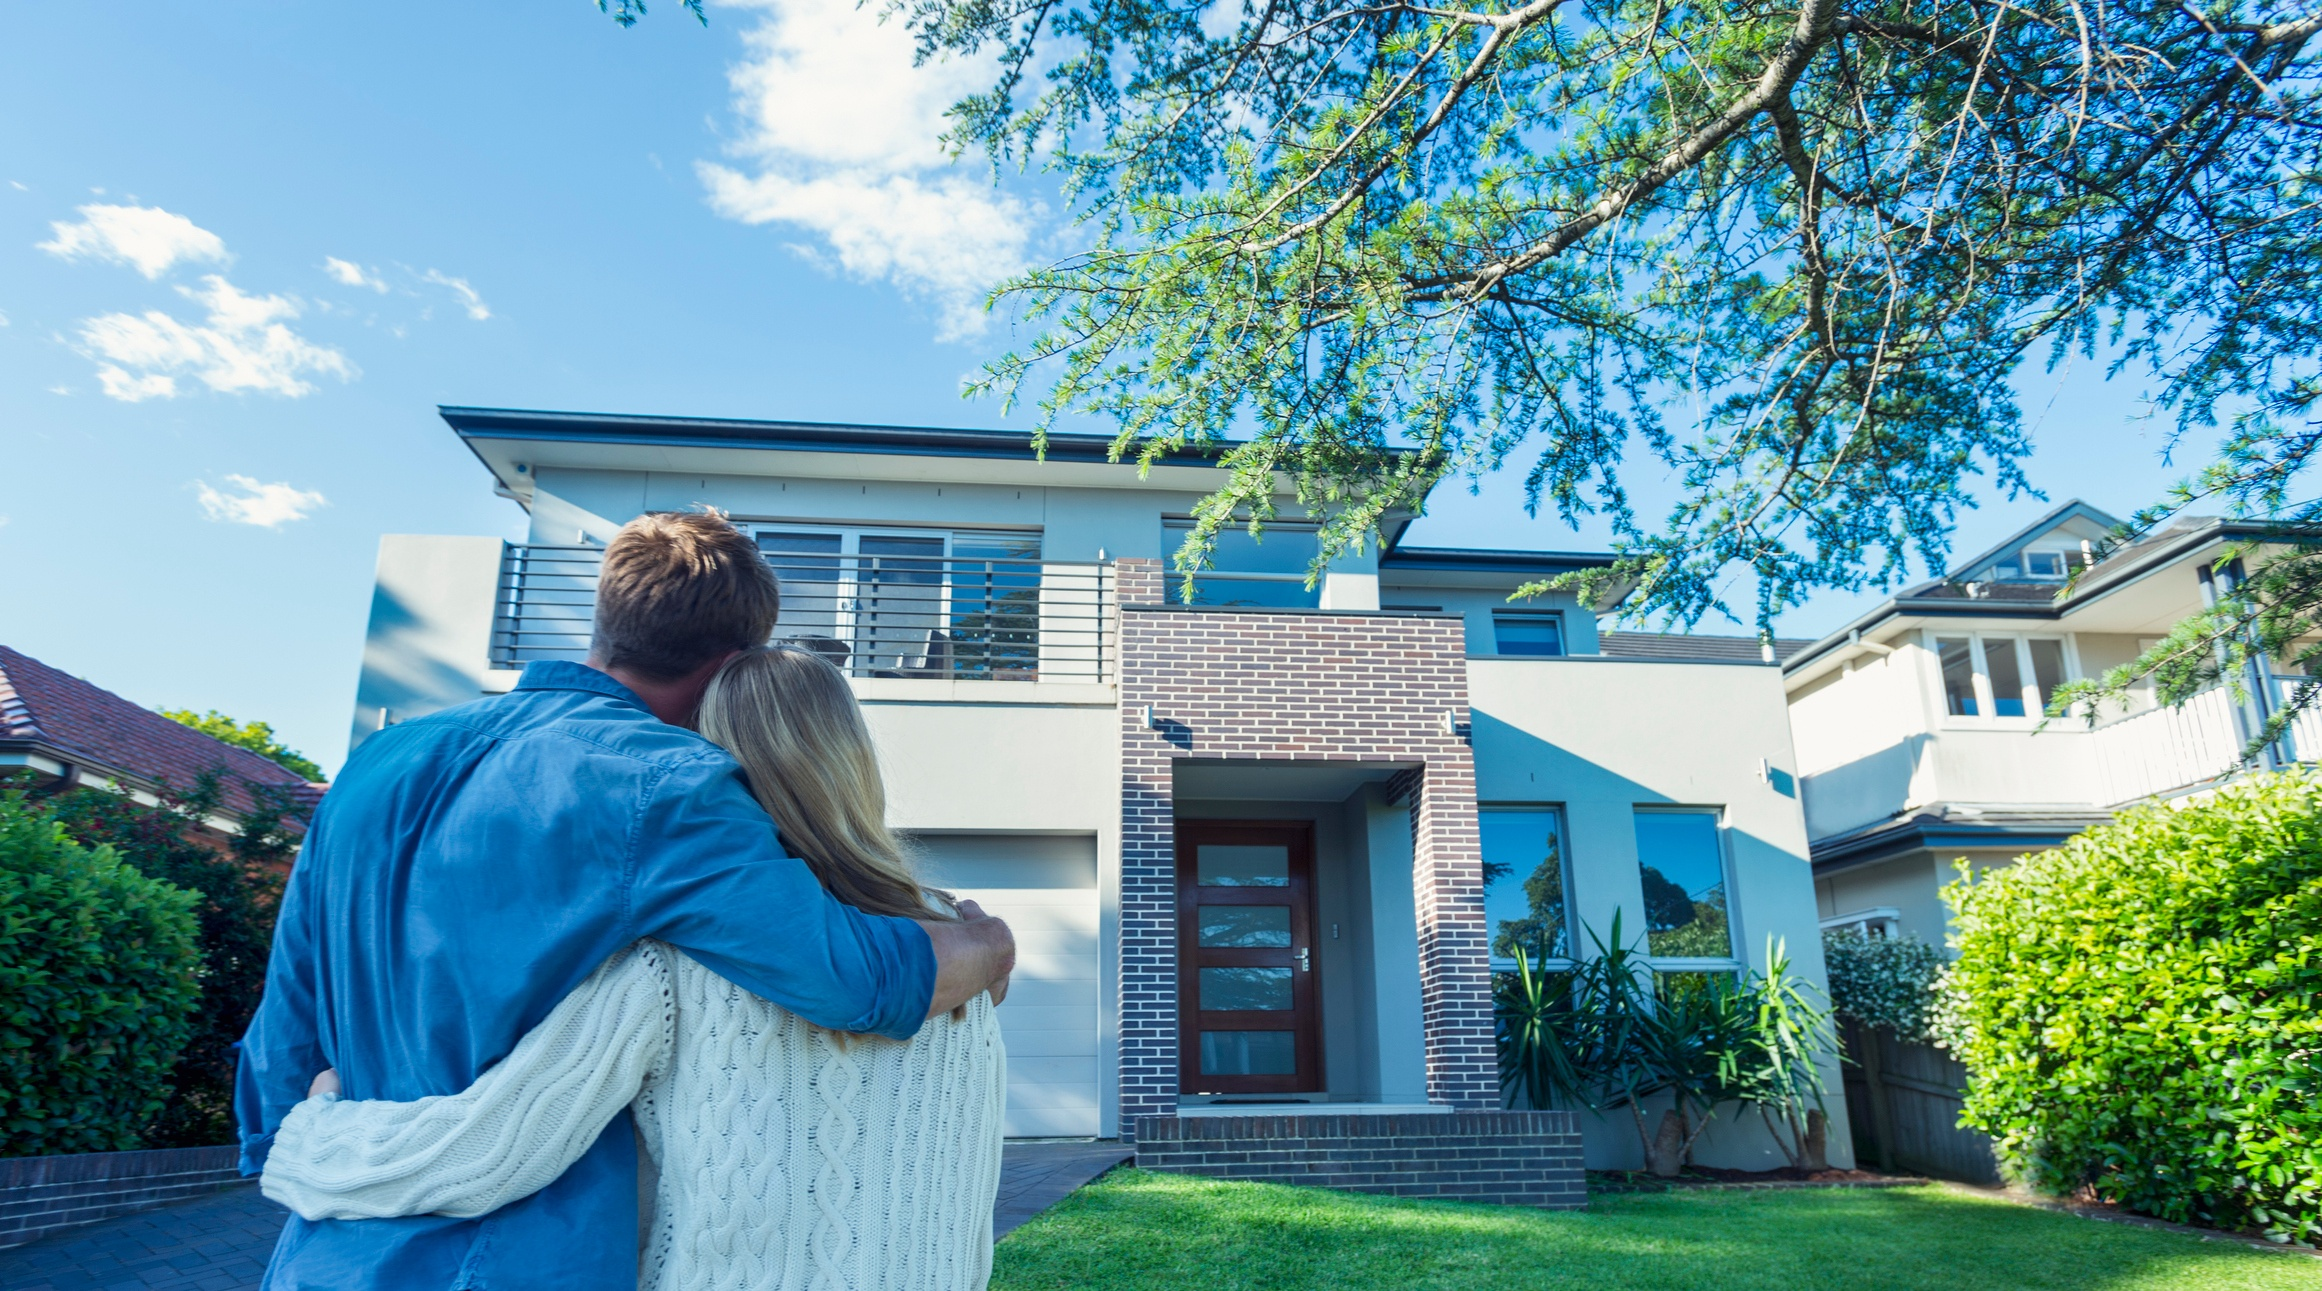 Breakdown of the Homebuying Process